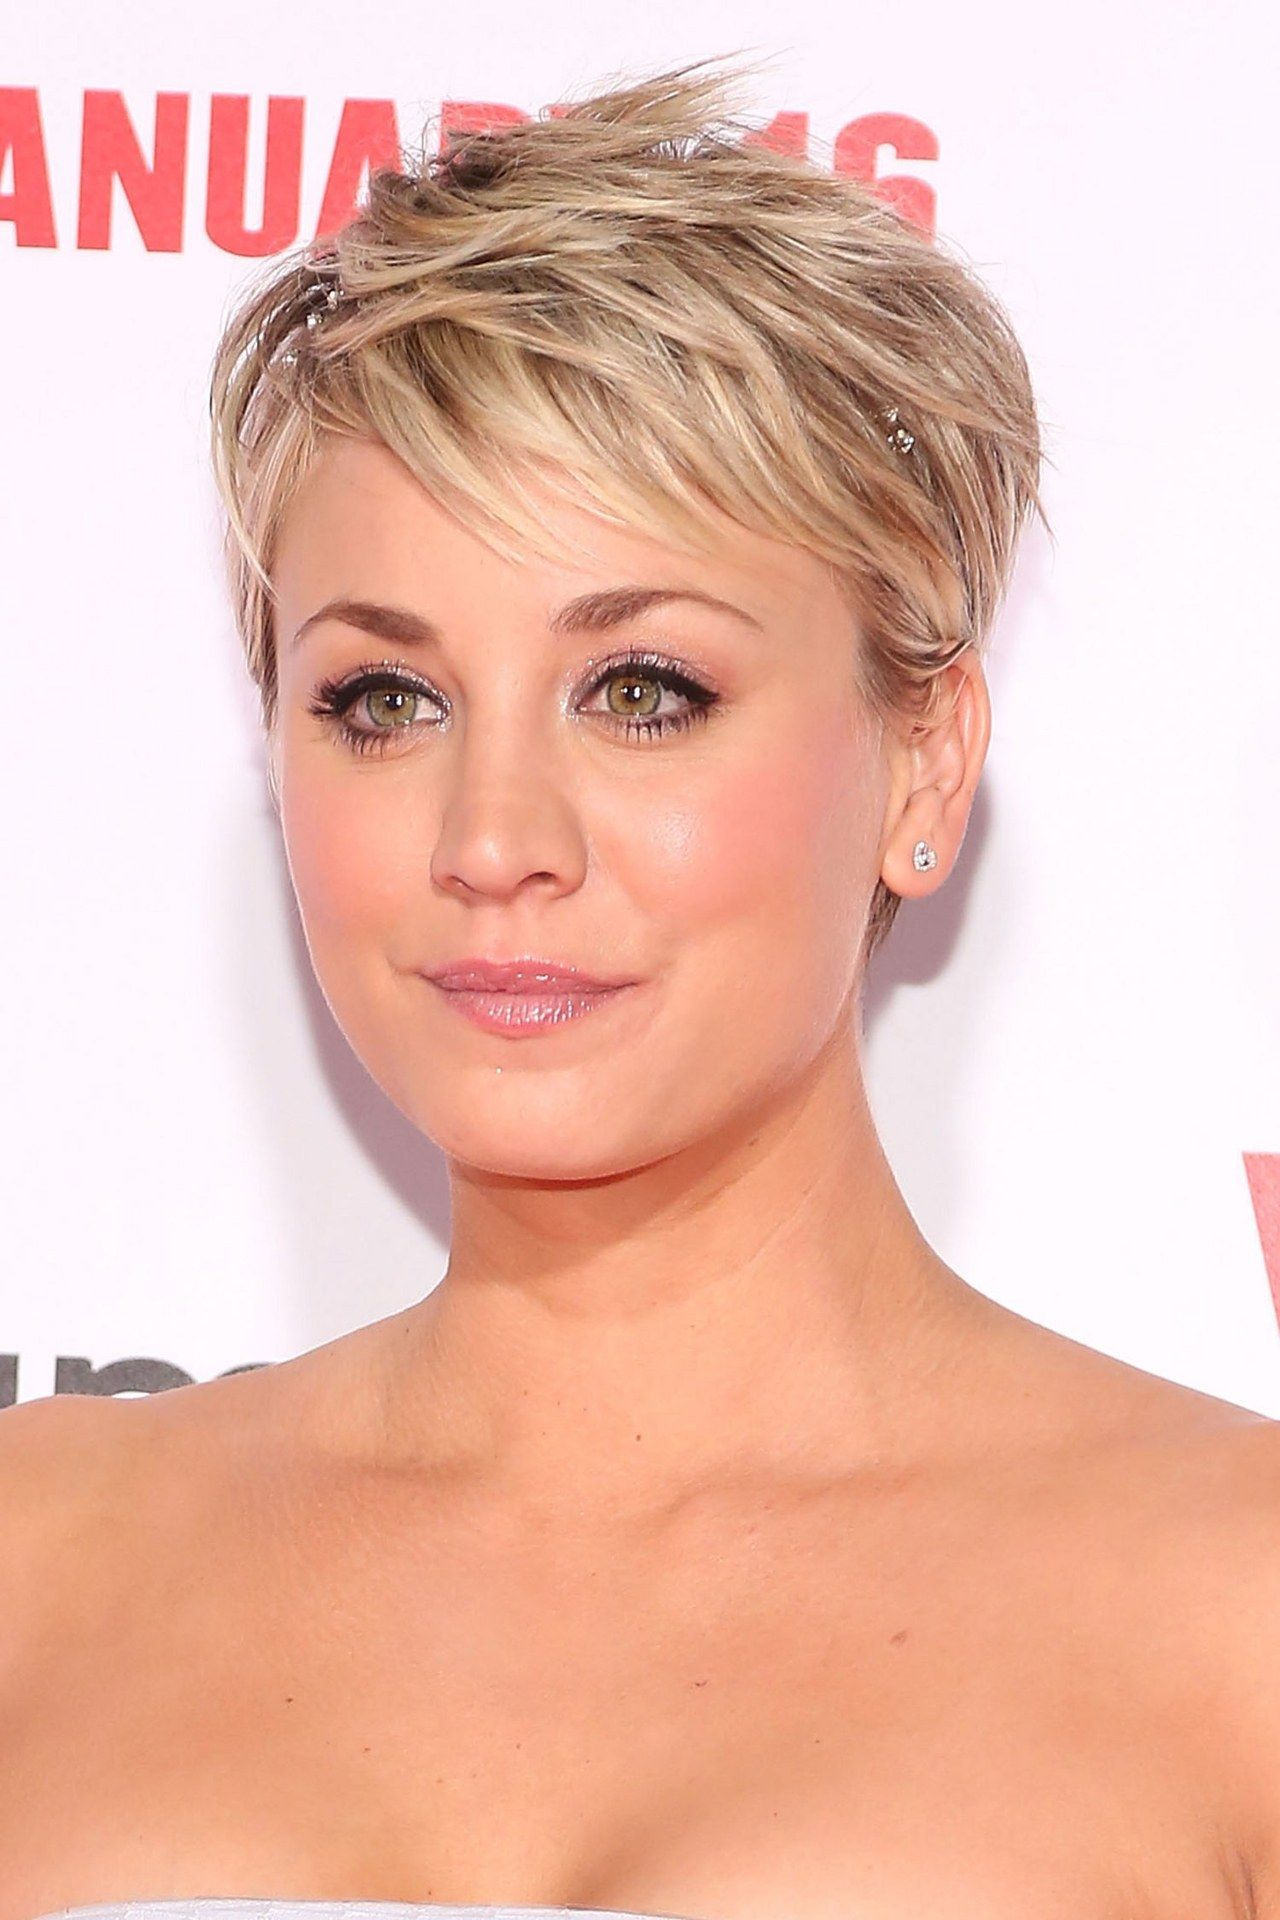 Pin By Larry Coleman On Penny Kaley Cuoco Pinterest Kaley Cuoco